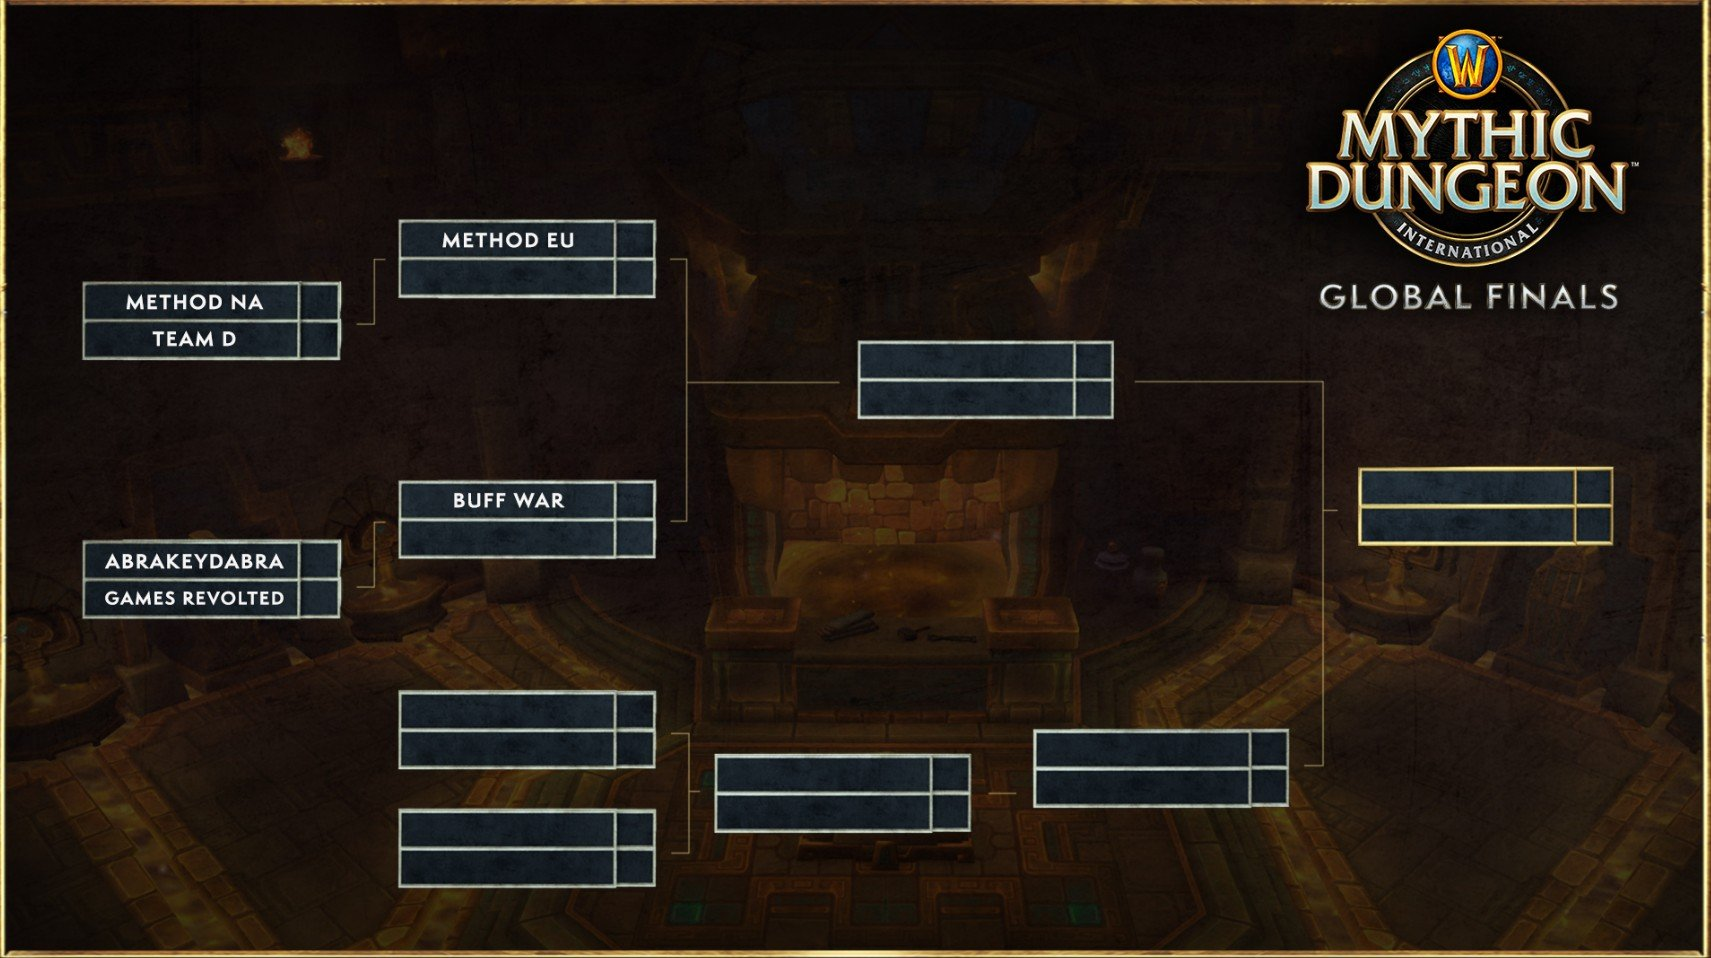 WoW Mythic Dungeon Invitational Global Finals 2019 bracket